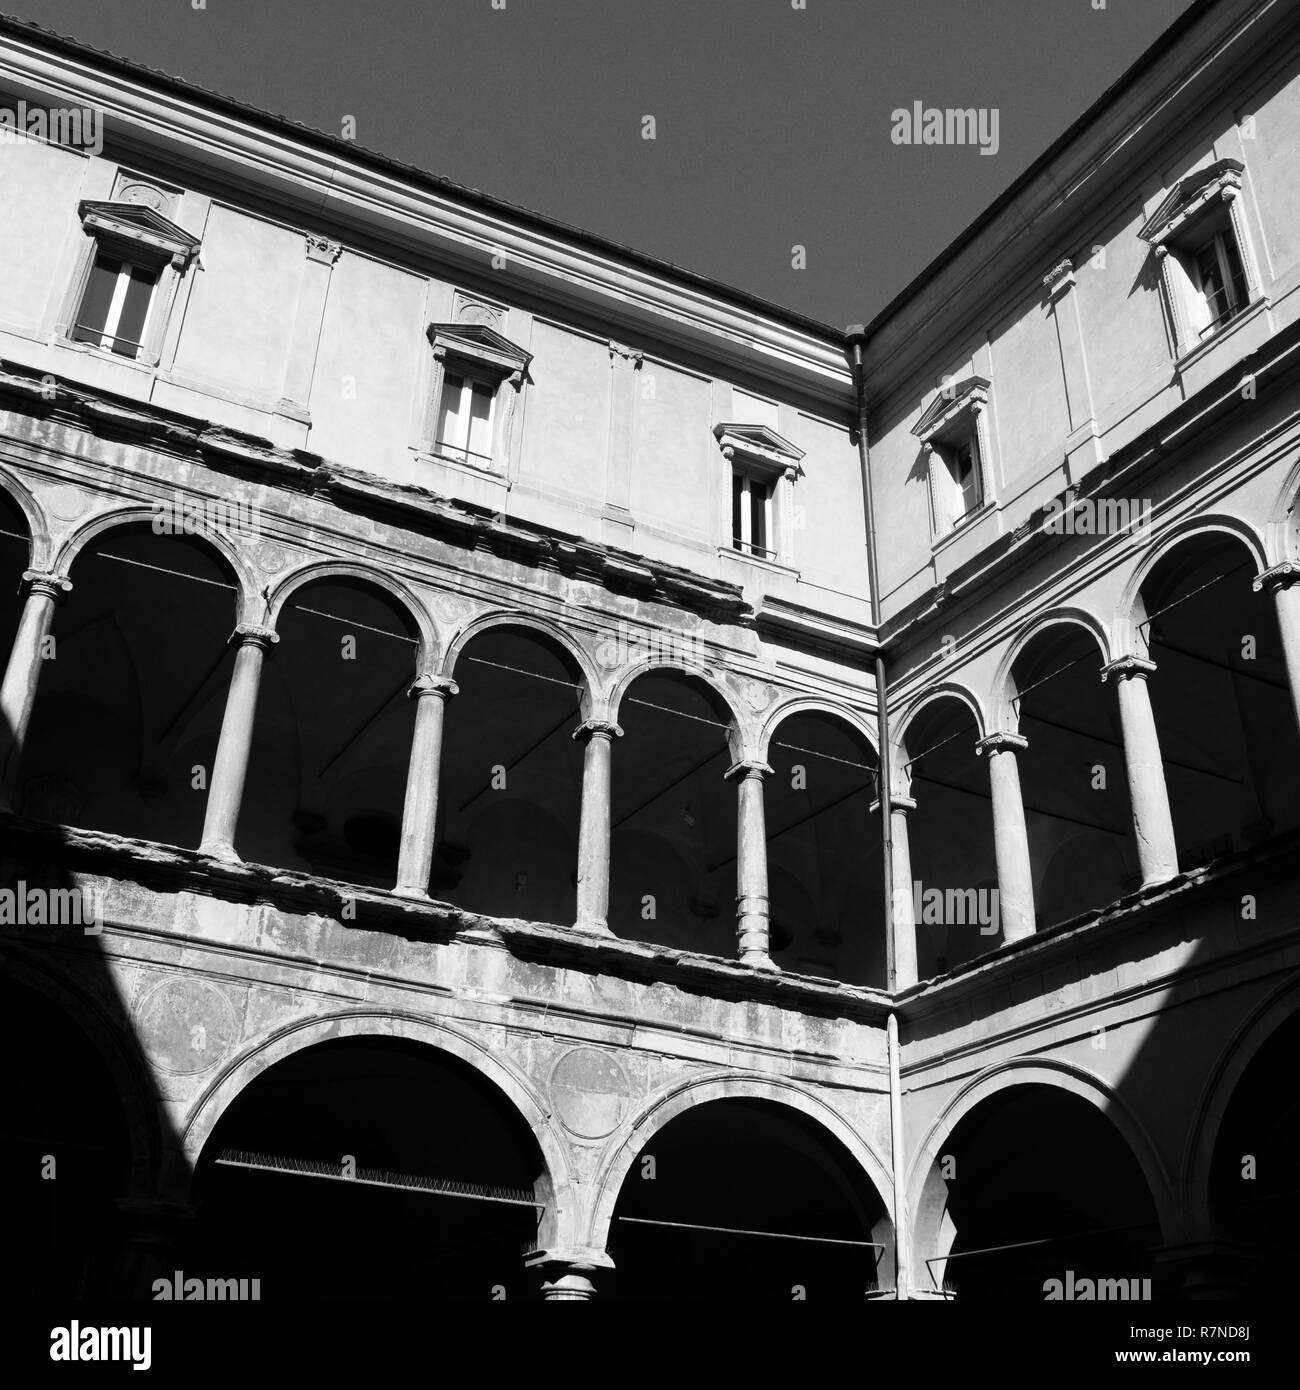 stark contrasty black and white architecture in bologny, italy. - Stock Image